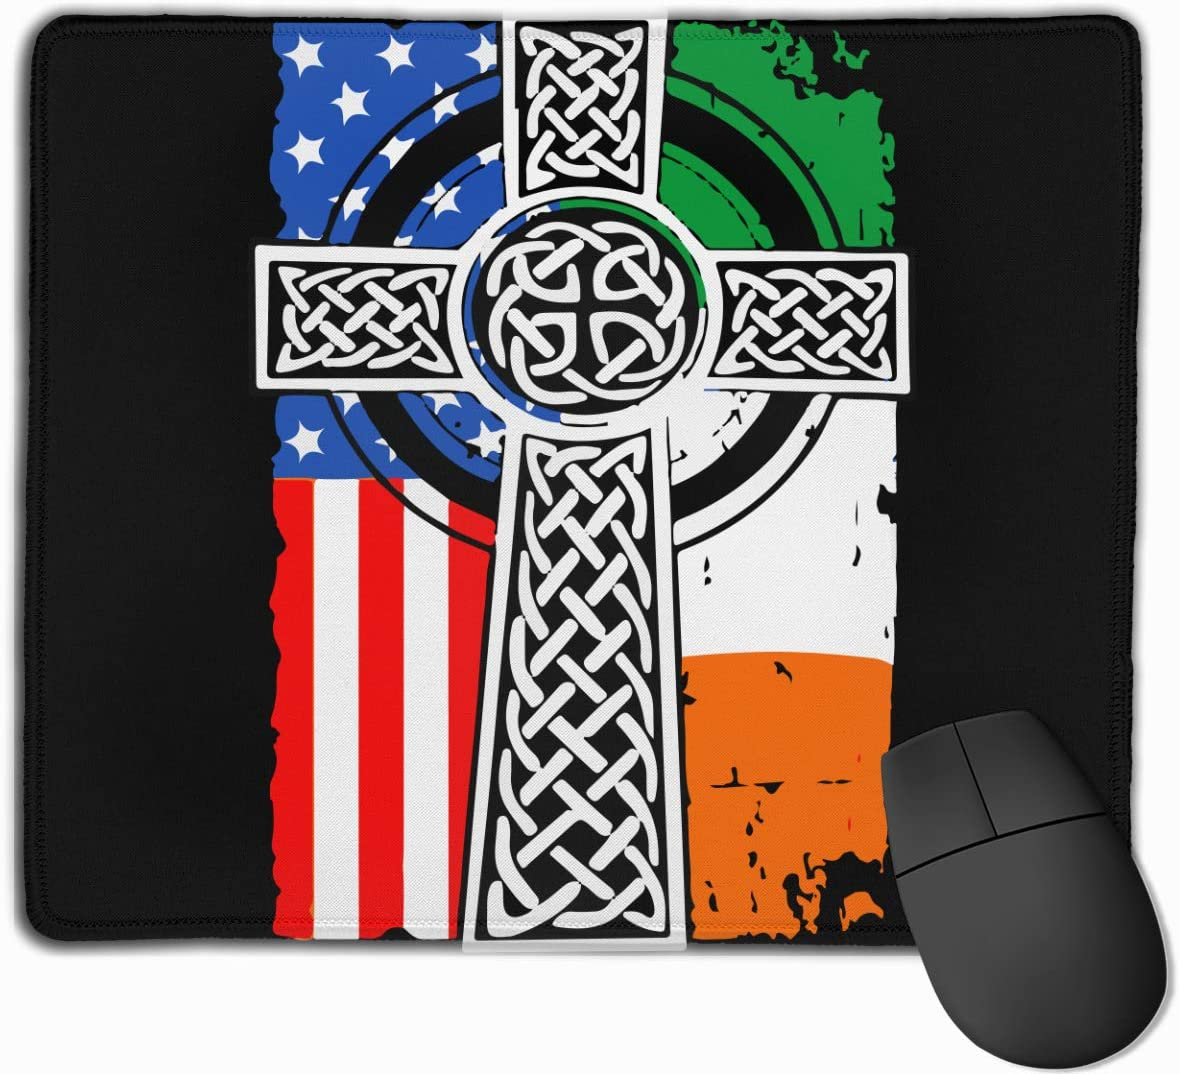 Non-Slip Rubber Base Mousepad for for Computers Laptop Irish American USA Flag Celtic Cross St Patricks Day Mouse Pad with Stitched Edge Office /& Home